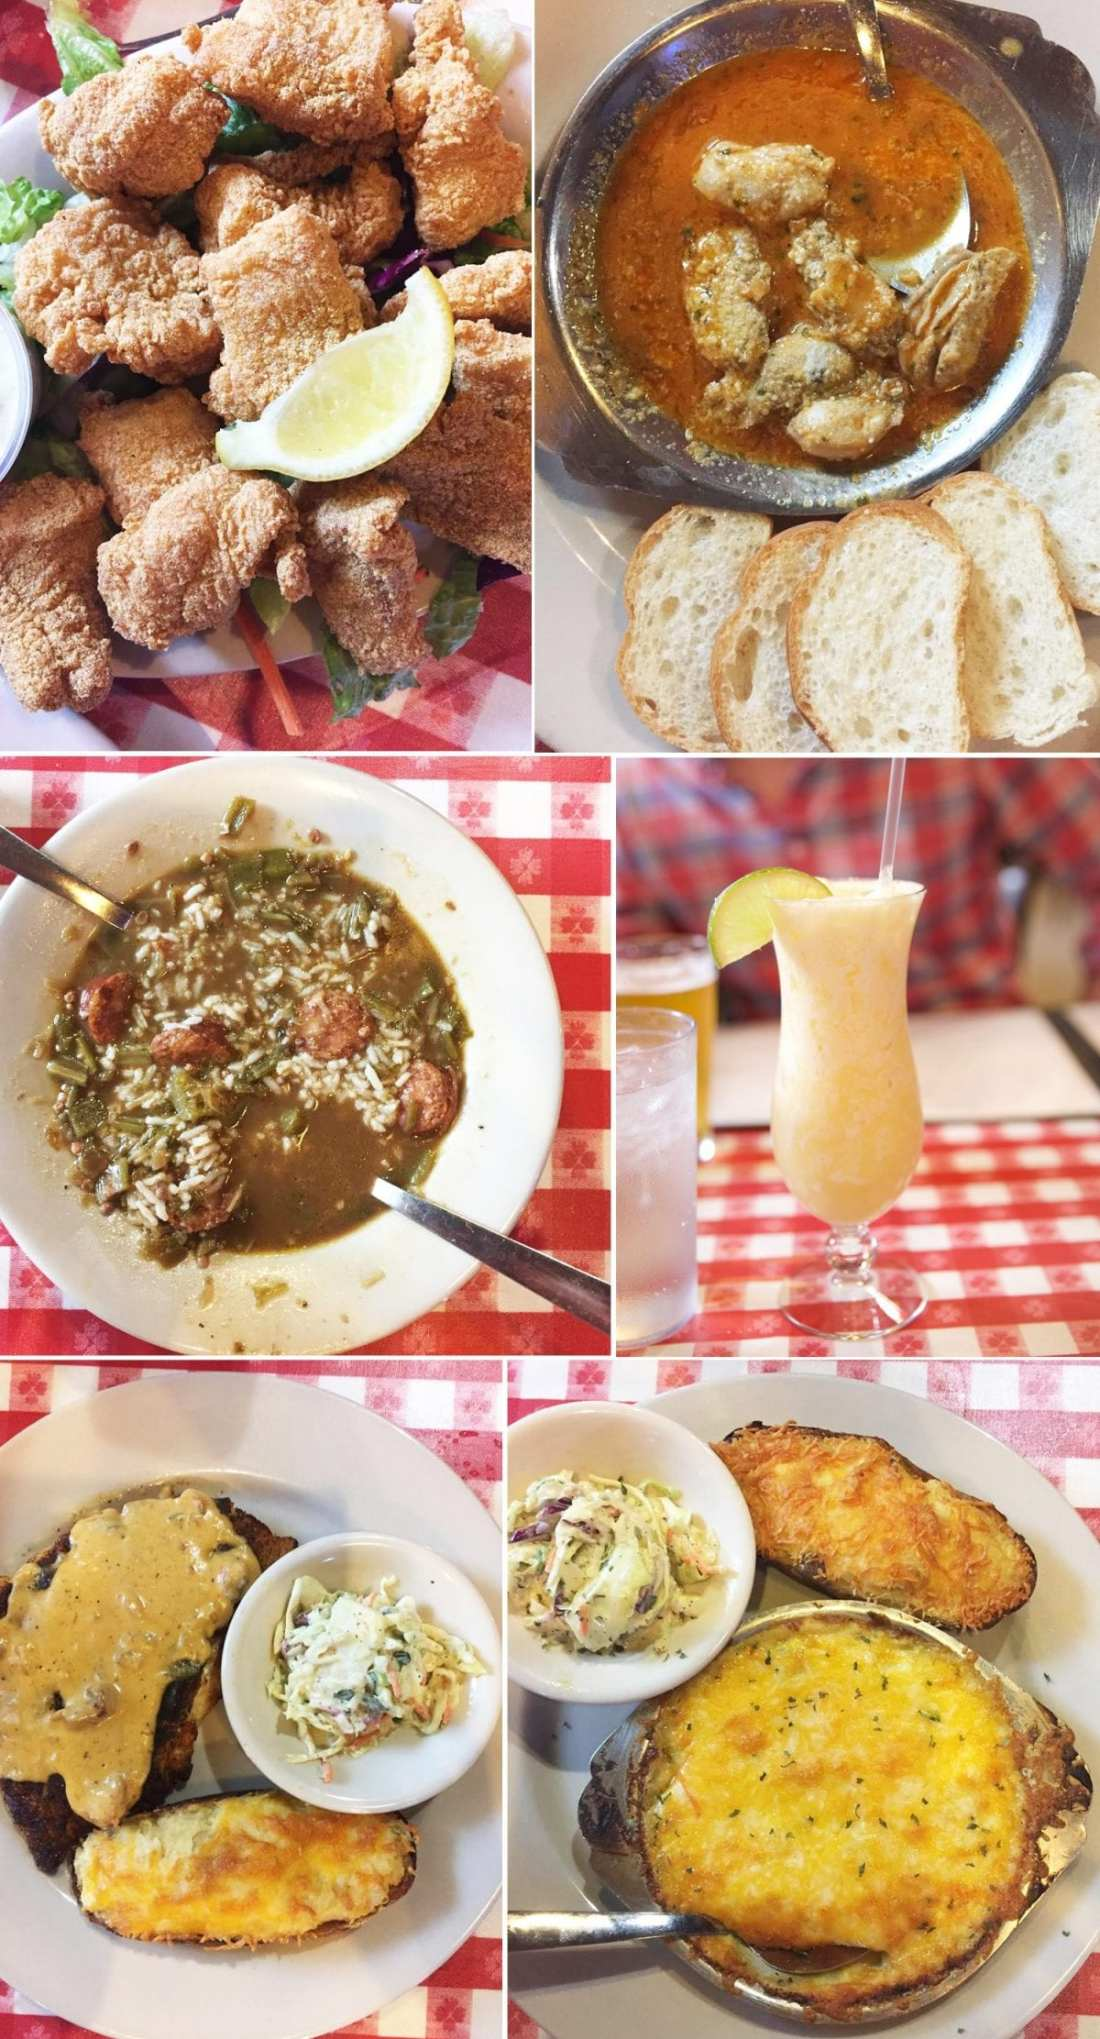 Where to eat in New Orleans - Mulate's